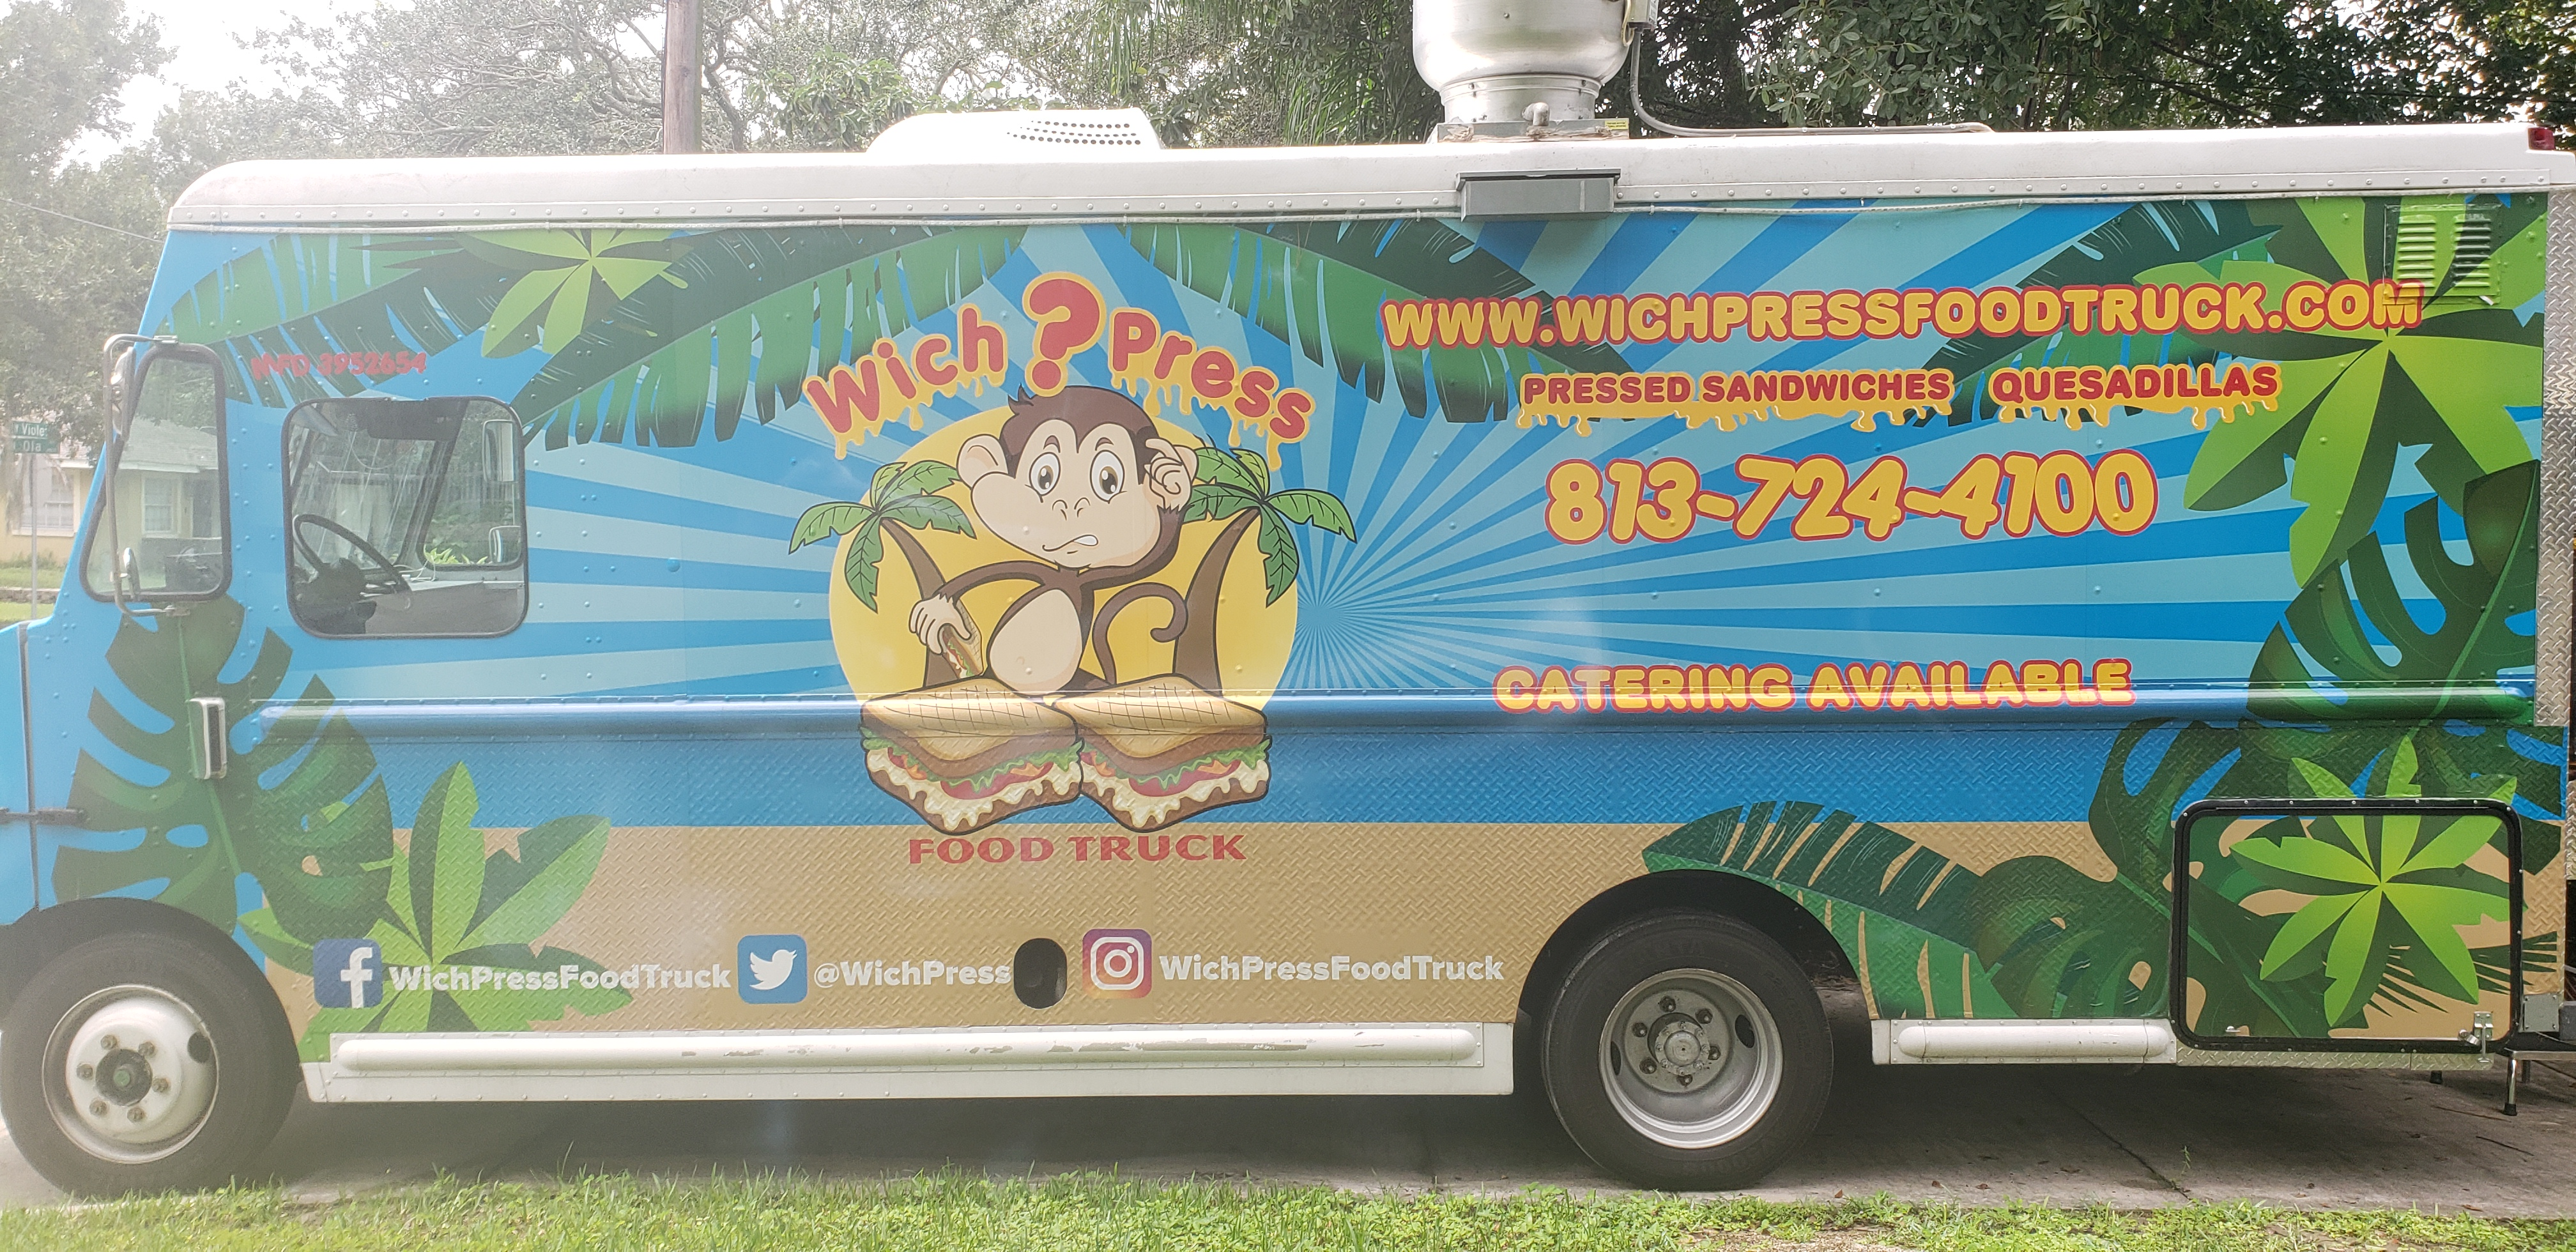 Wich Press Food Truck